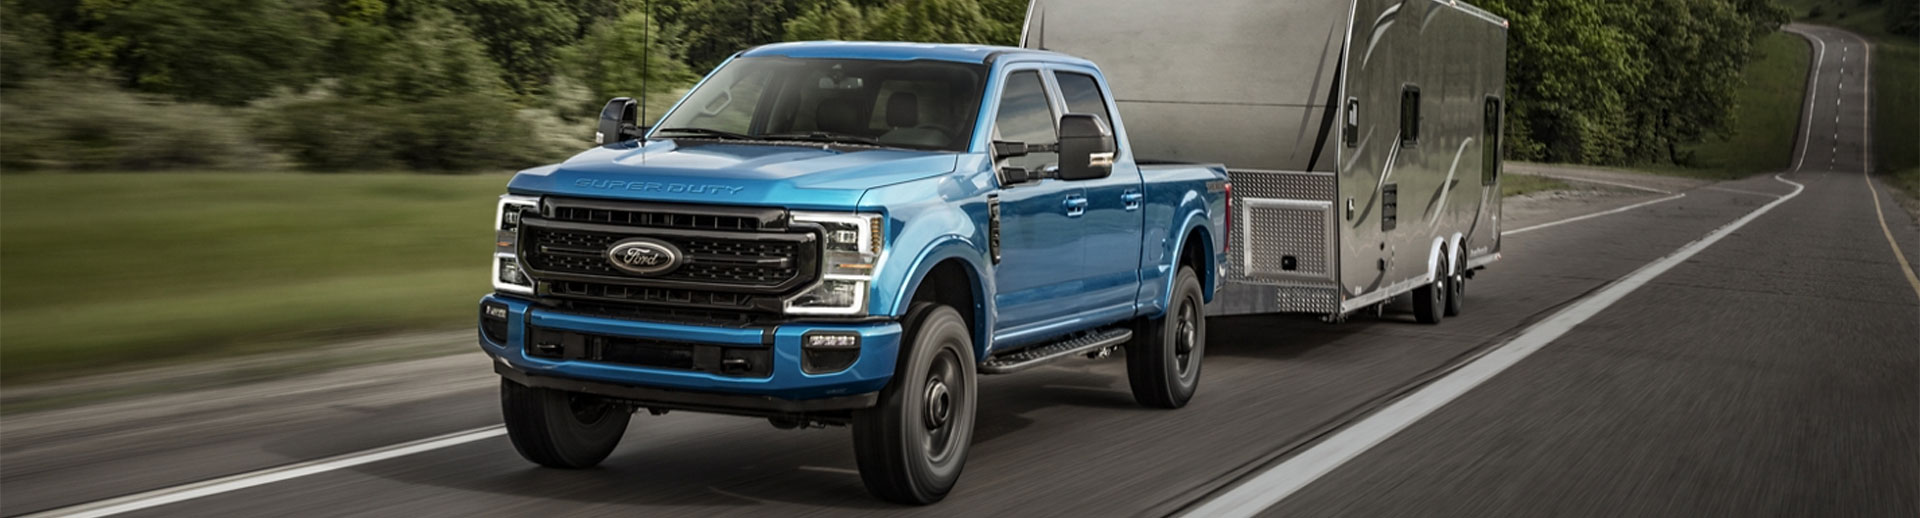 2020 Ford F-250 Lifestyle Photo